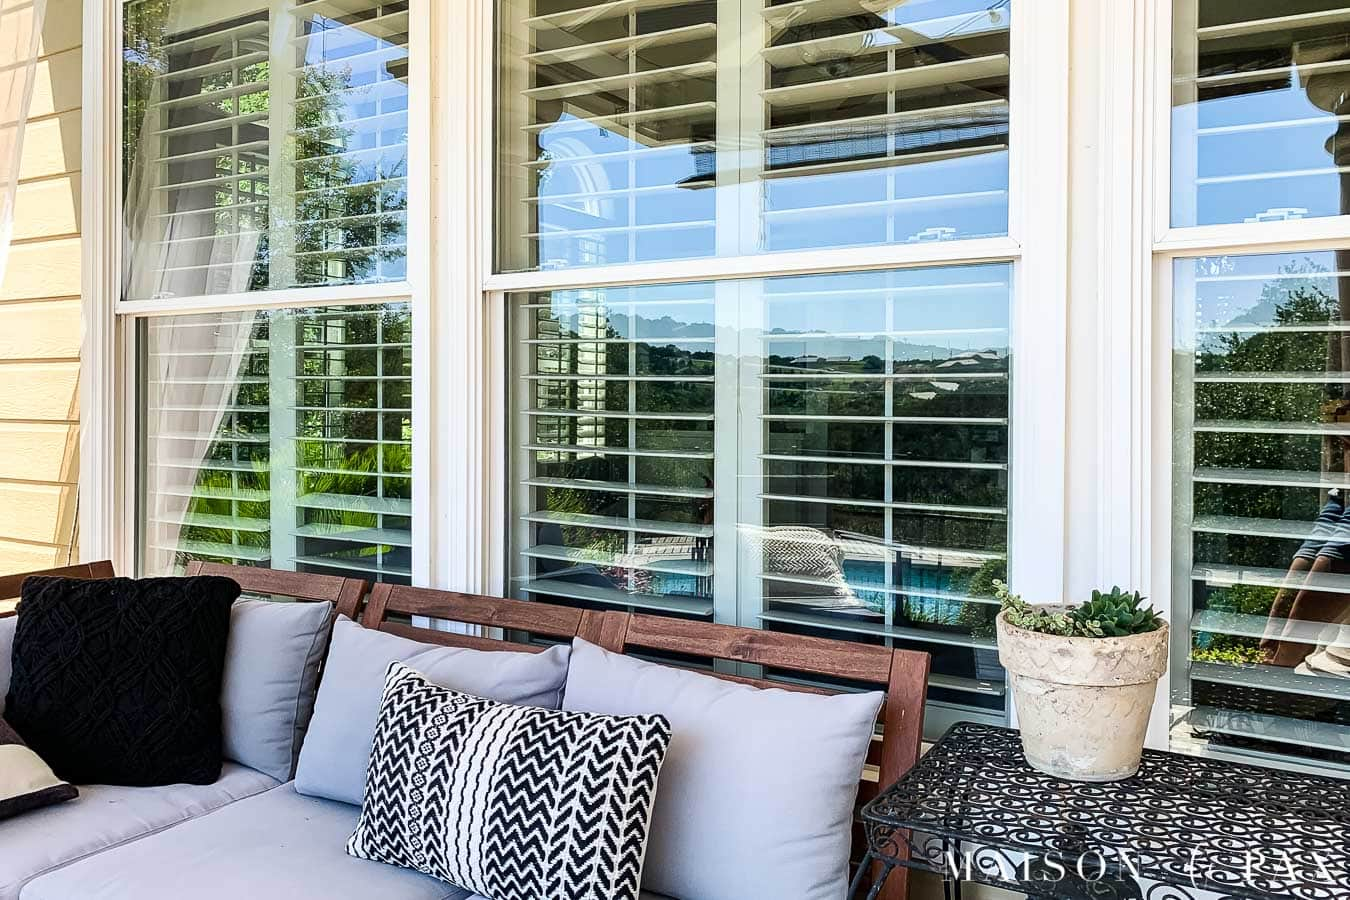 clean patio windows behind outdoor sofa on back porch | Maison de Pax